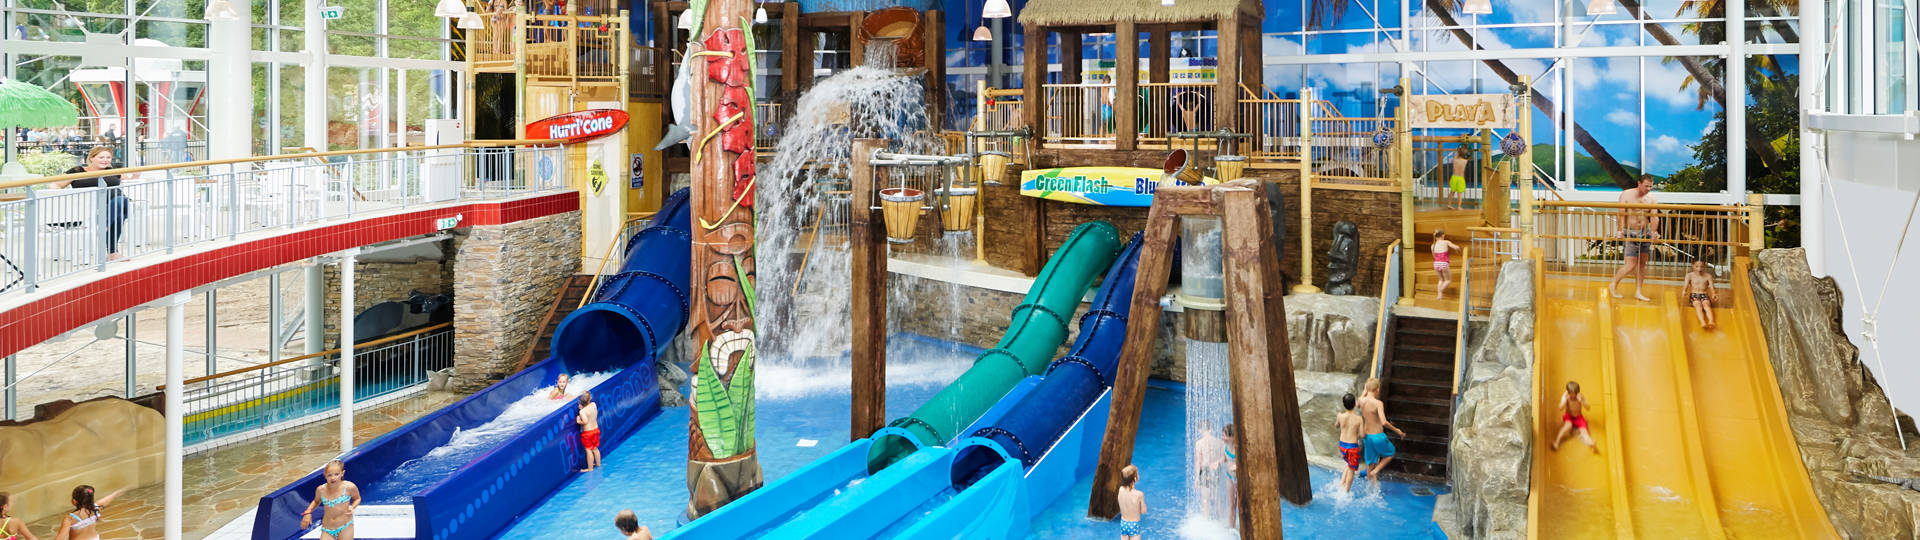 Holiday park and amusement park in holland - Campsites in holland with swimming pool ...